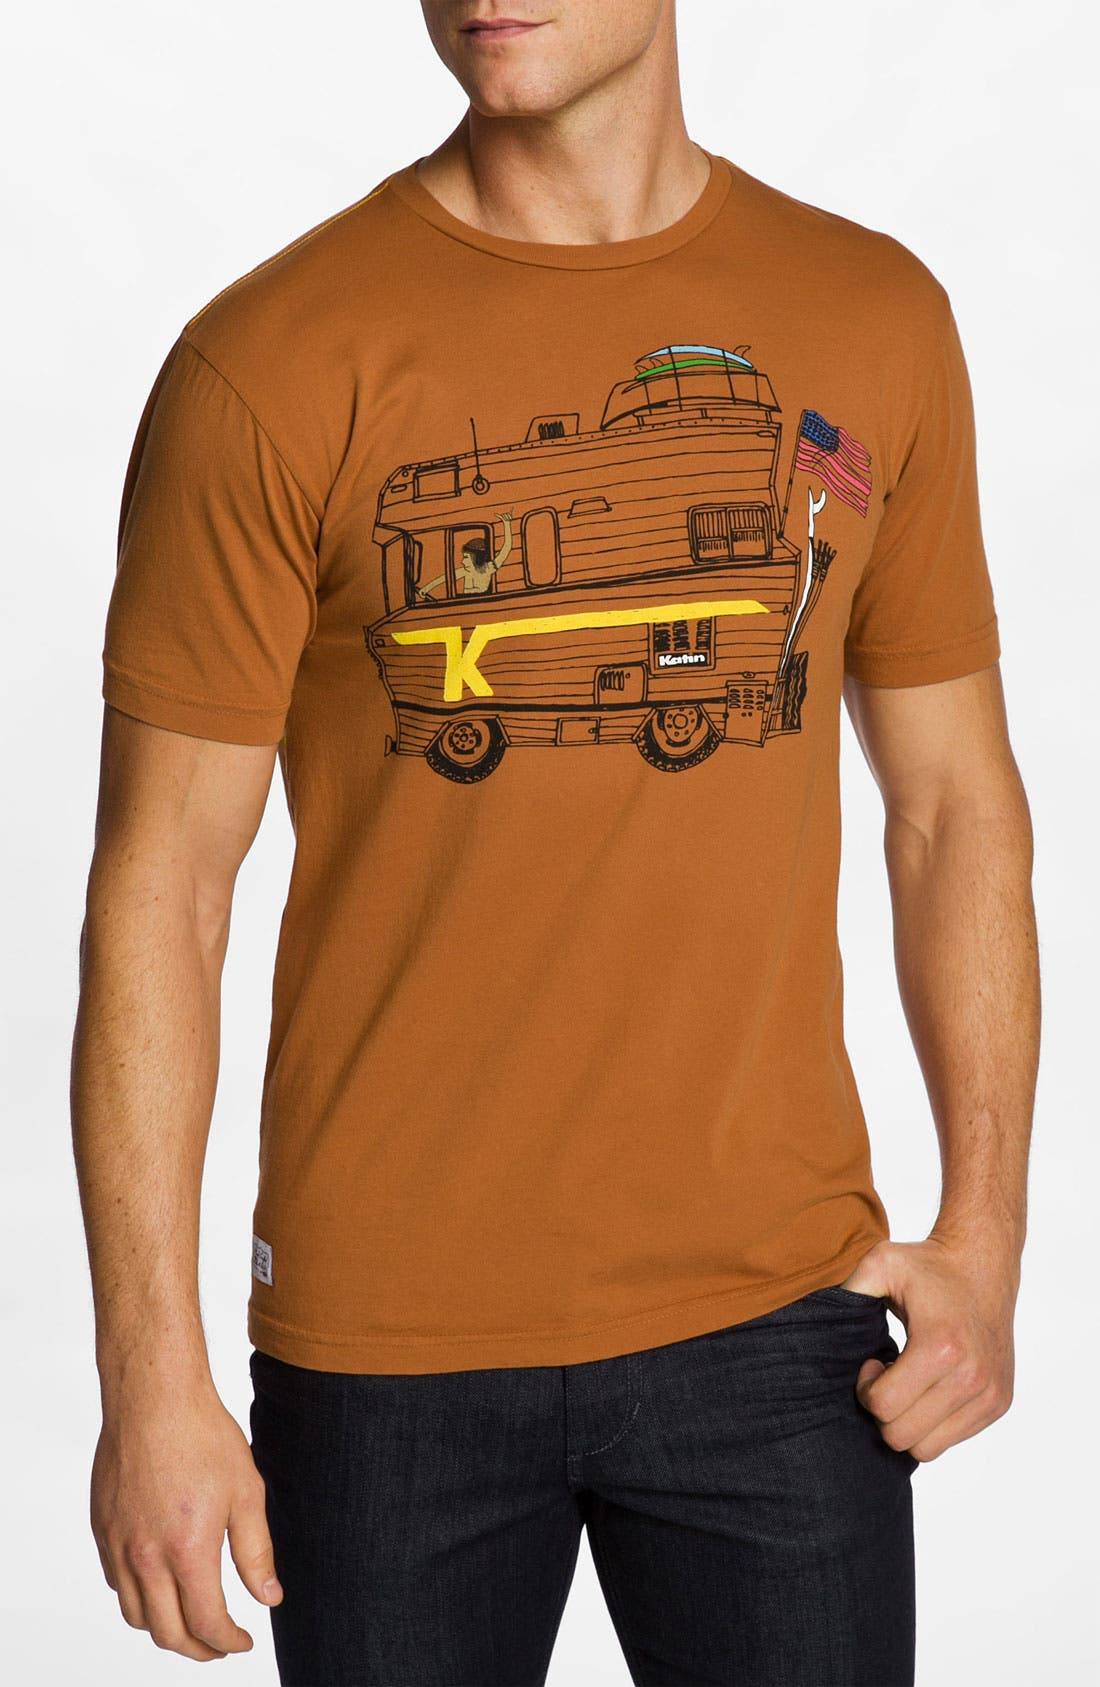 Alternate Image 1 Selected - Katin 'Route 66' Graphic T-Shirt